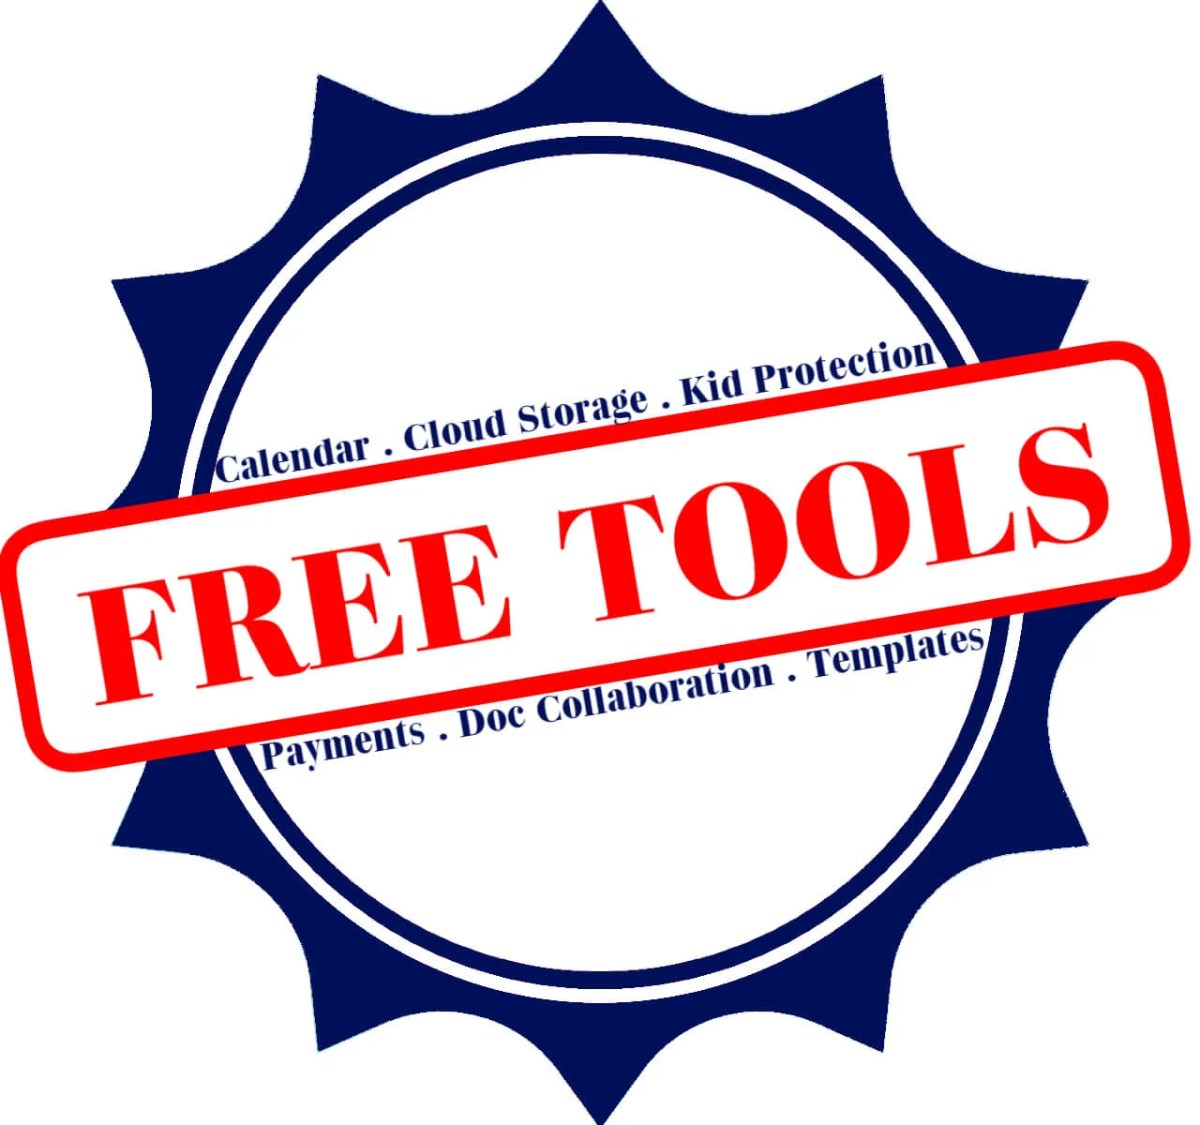 seal that reads free tools in red letters and Calendar, cloud storage, kid protection, payments, doc collaboration and templates in blue letters